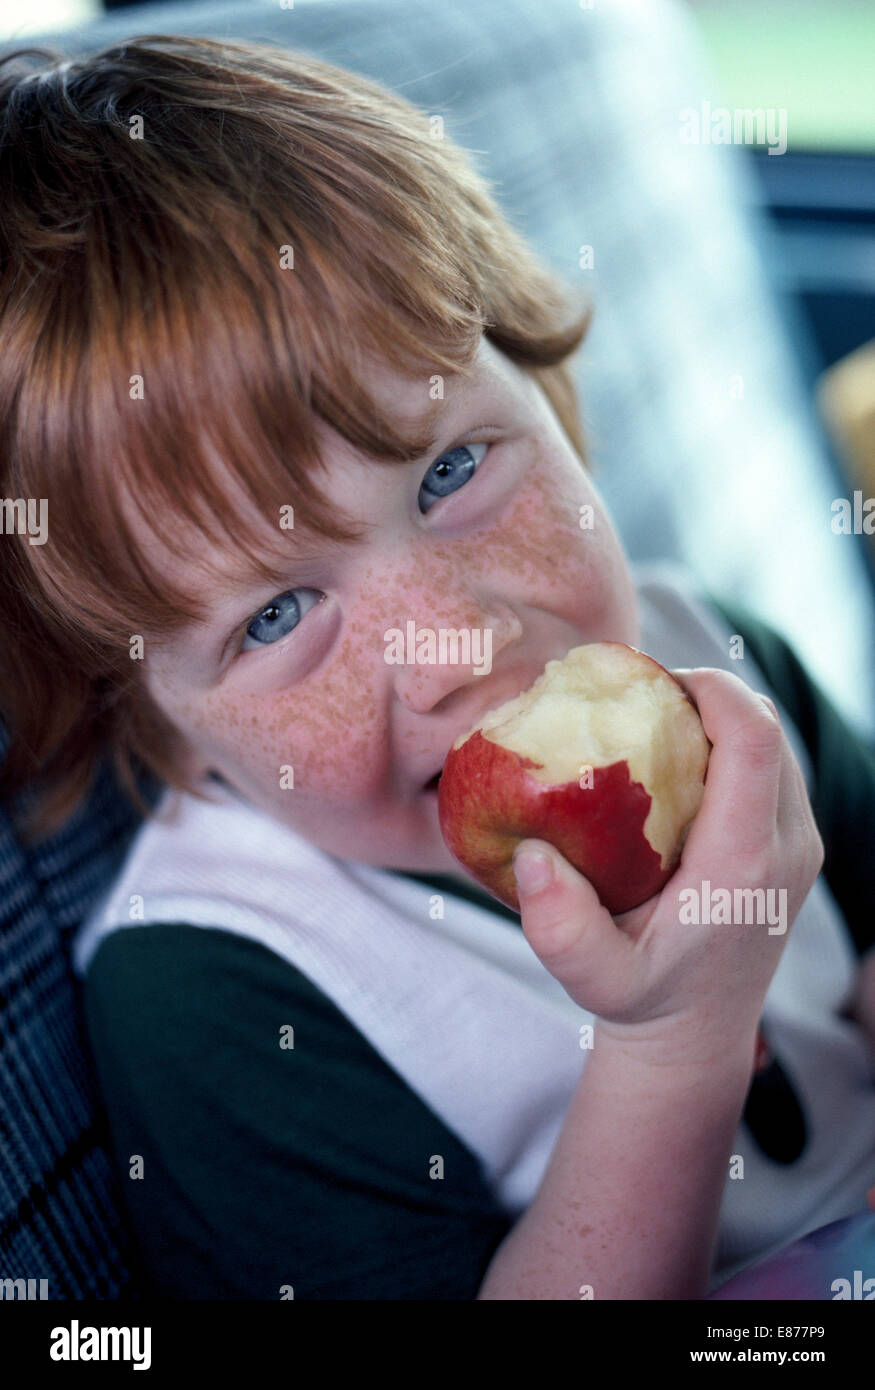 A four-year-old American boy with red hair, blue eyes and a freckled face enjoys eating an apple in this informal - Stock Image